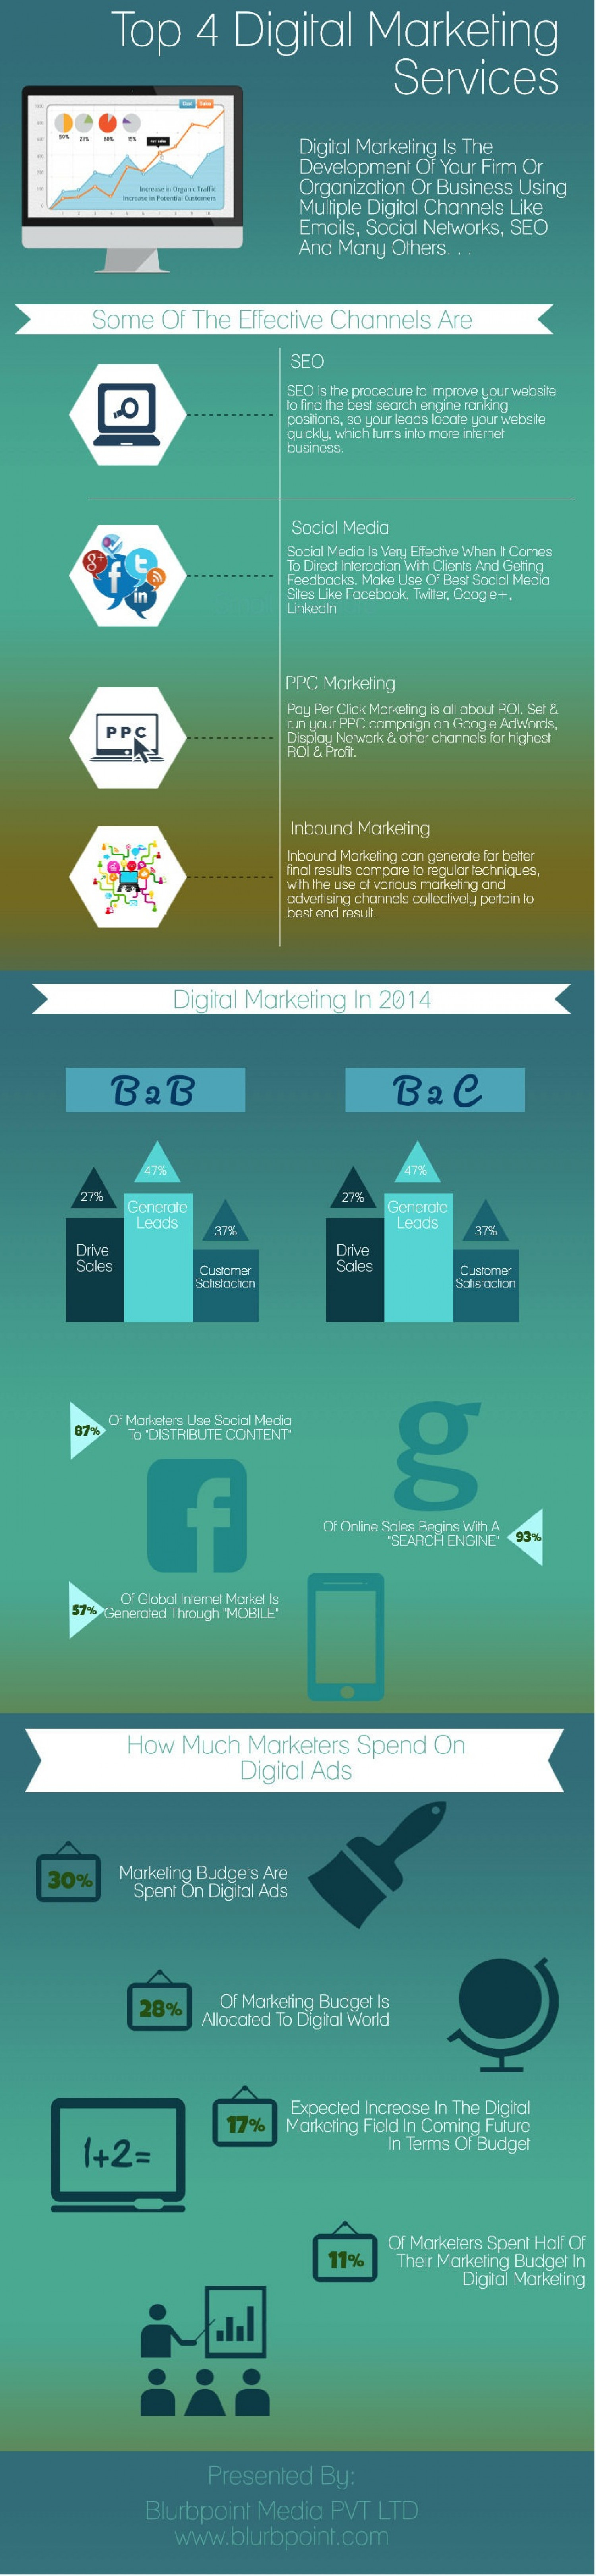 Top 4 Digital Marketing Services Infographic